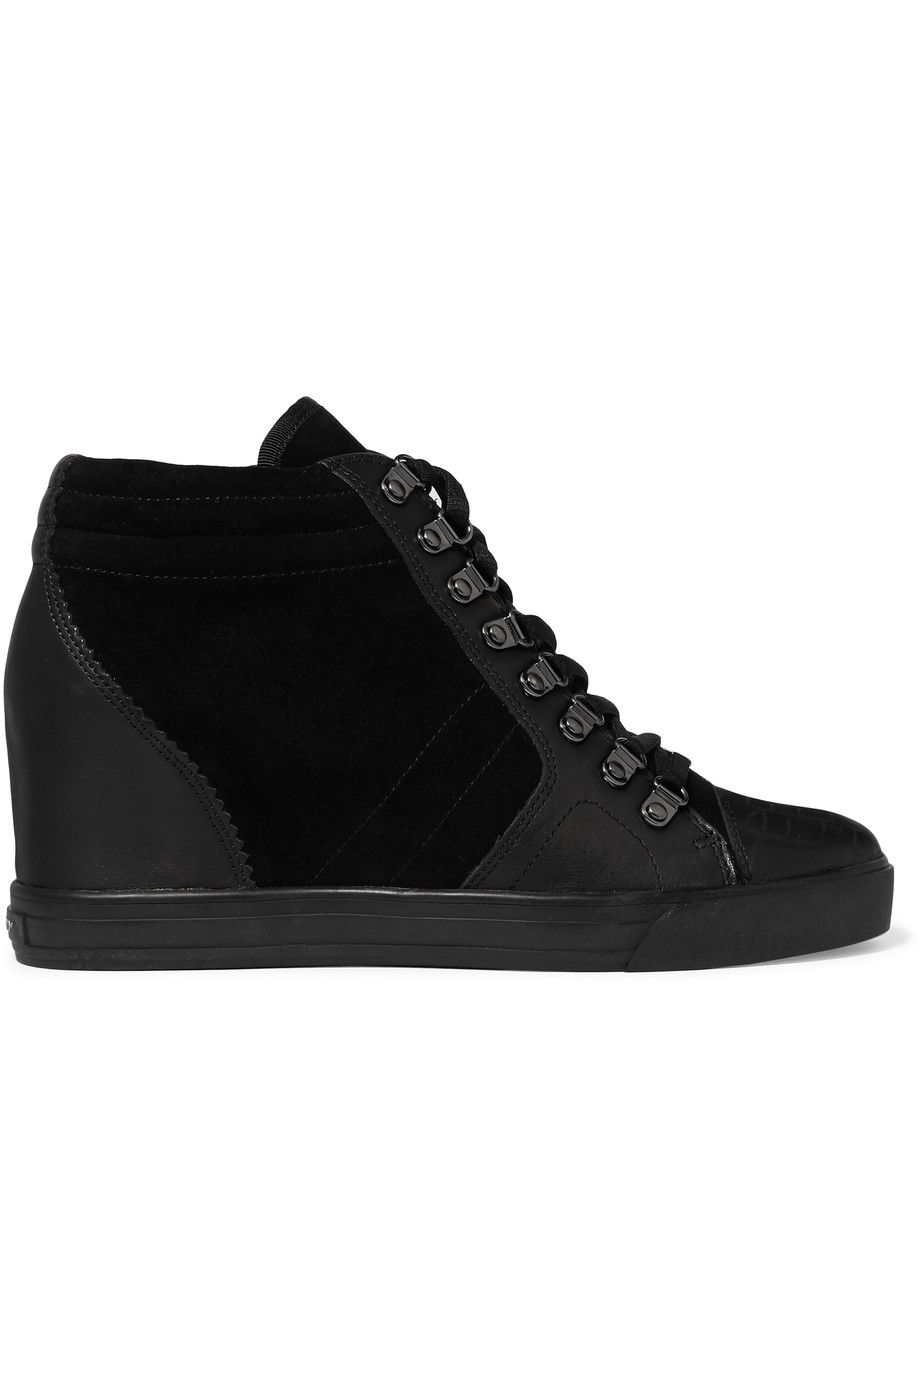 ec1b5c2288e6 DKNY Cindy Paneled Suede And Leather Wedge Sneakers.  dkny  shoes  sneakers